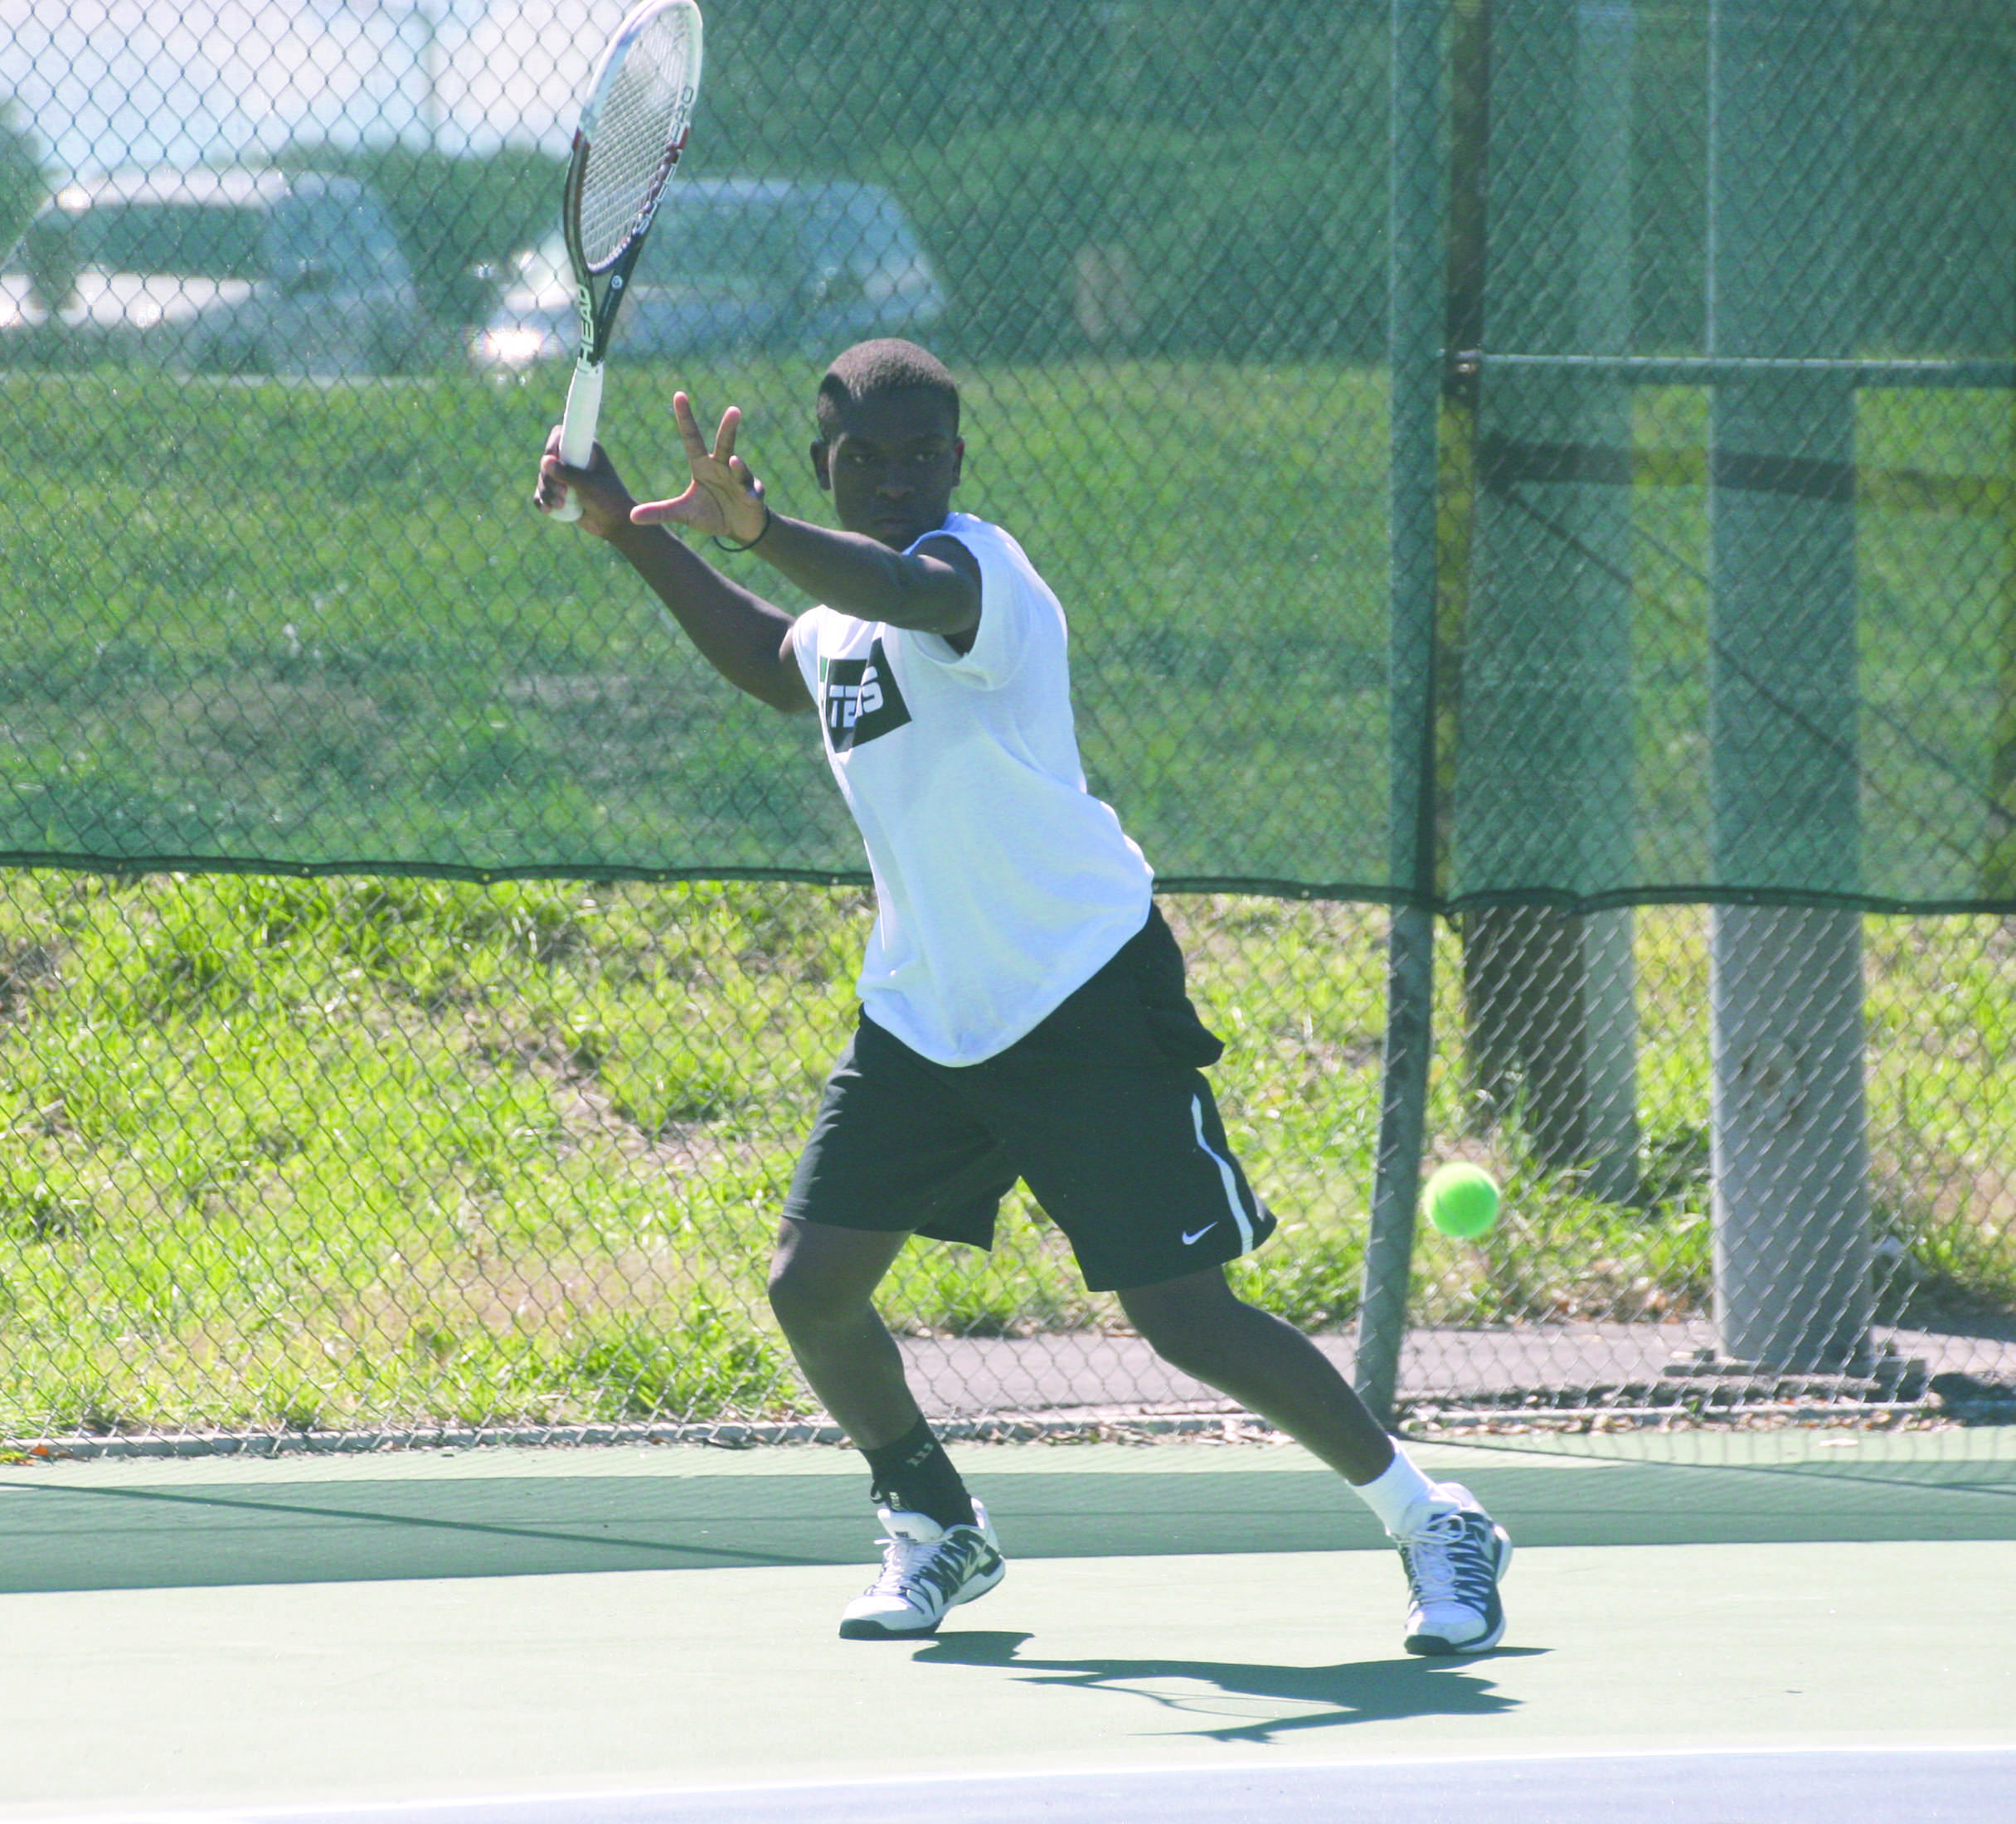 Top ranked player, Saurombe from Zimbabwe takes up challenge at nationals